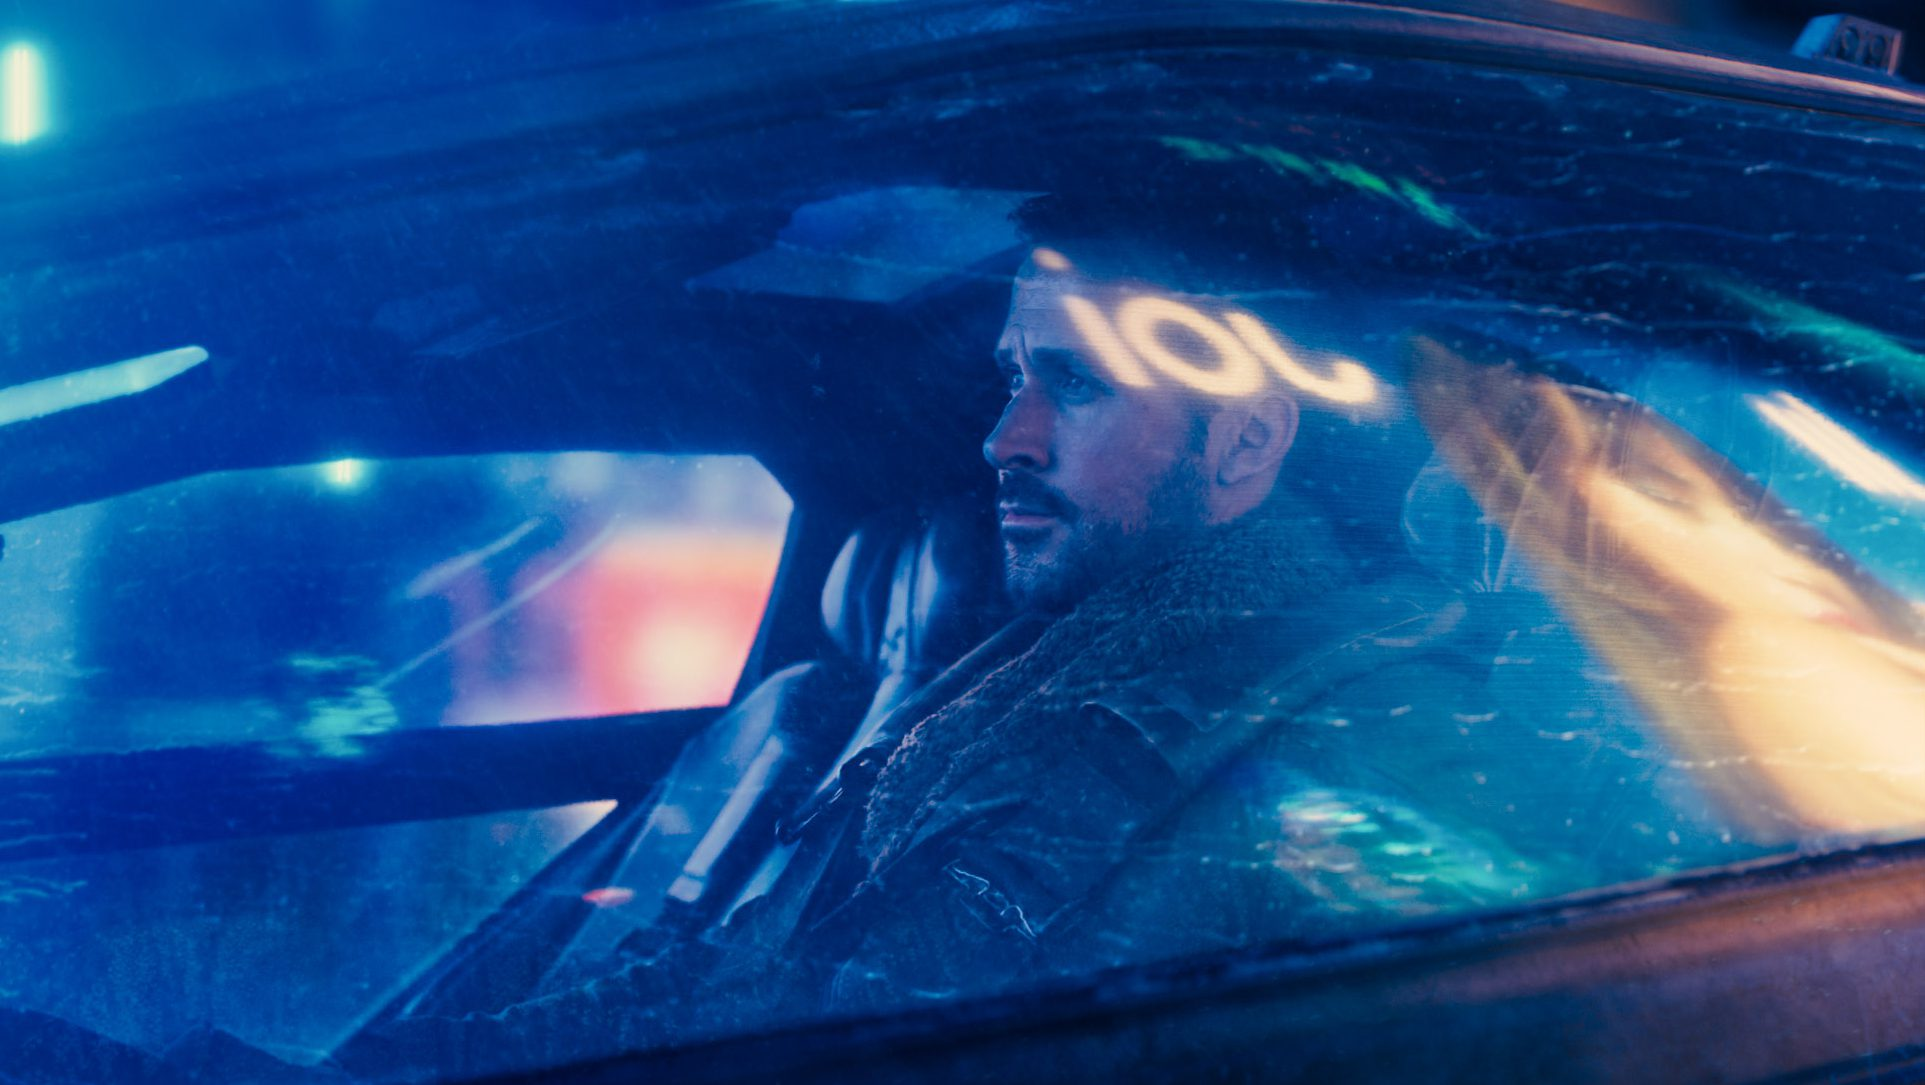 Blade Runner 2049: How realistic is the technology, like